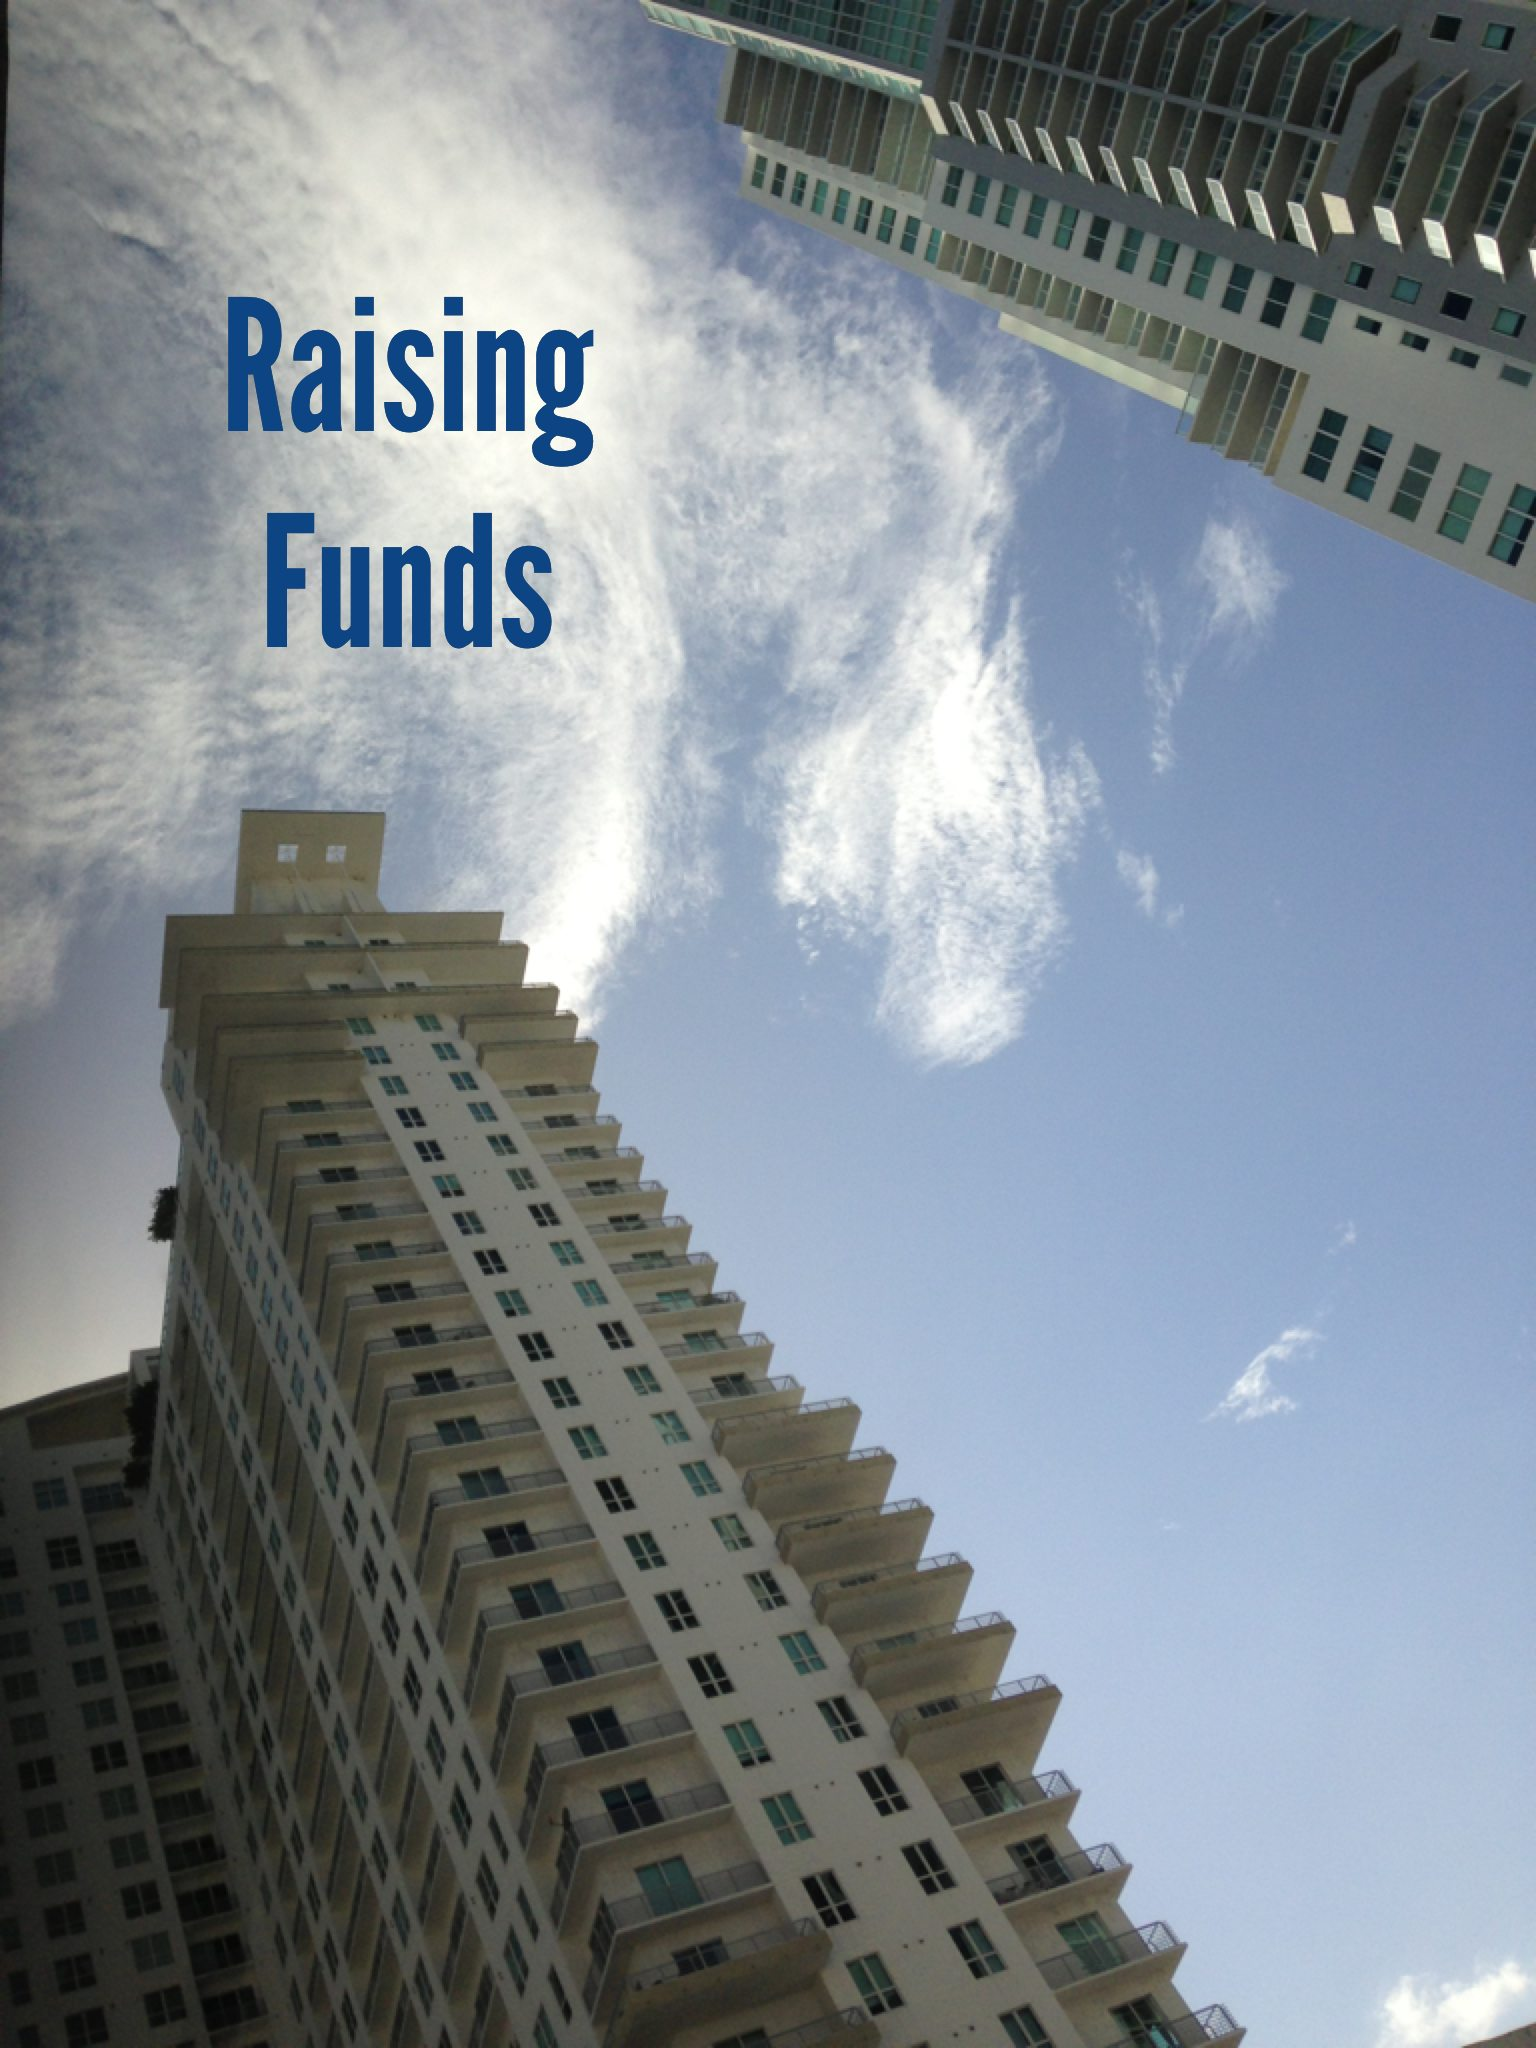 Looking For An Angel? The Basics of Finding an Investor